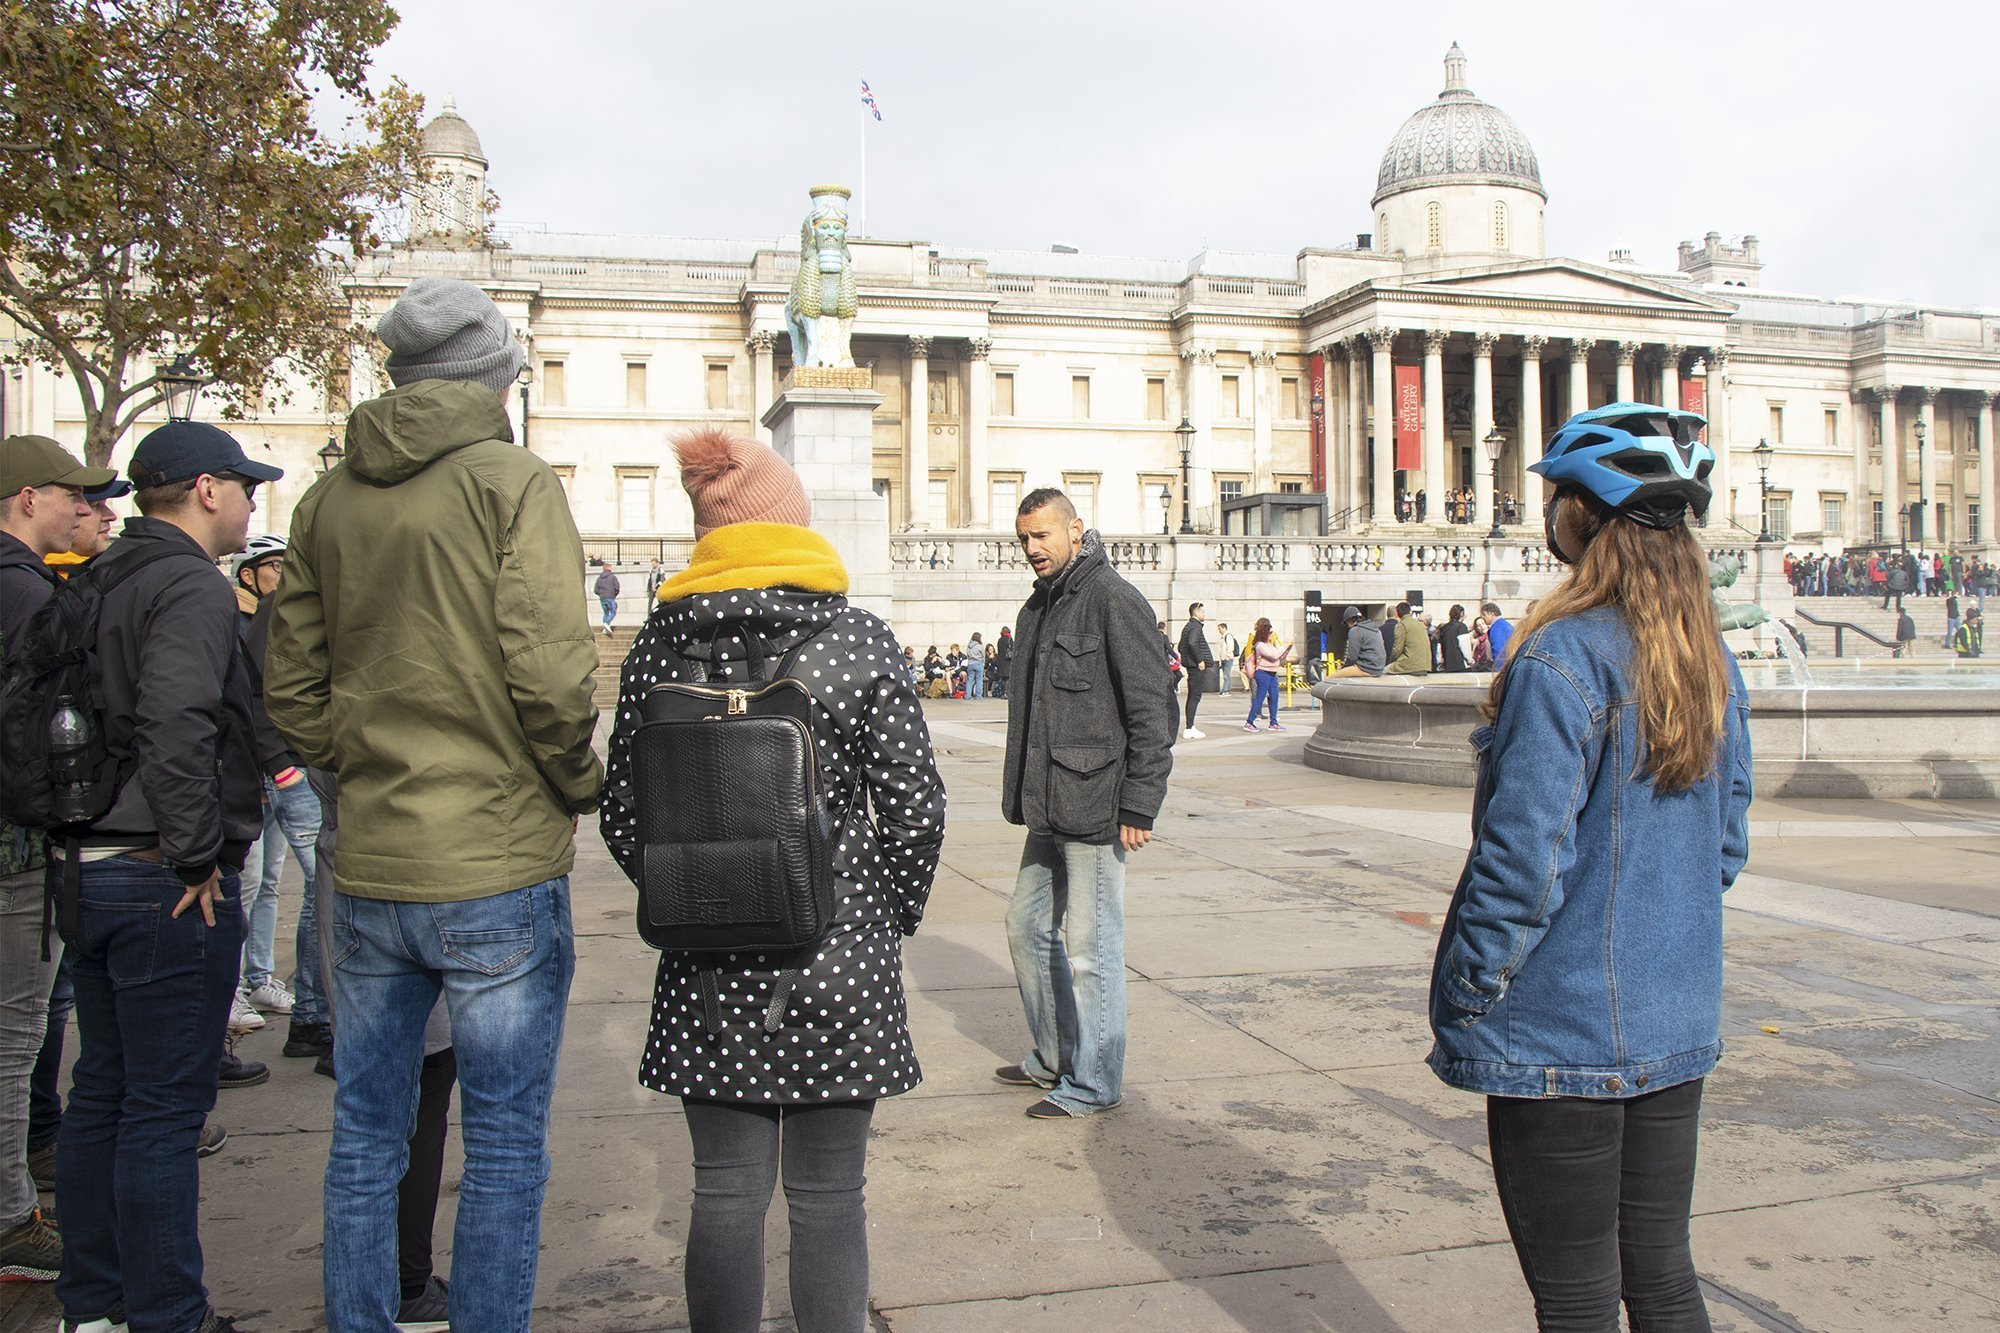 Bike tour in Trafalgar Square